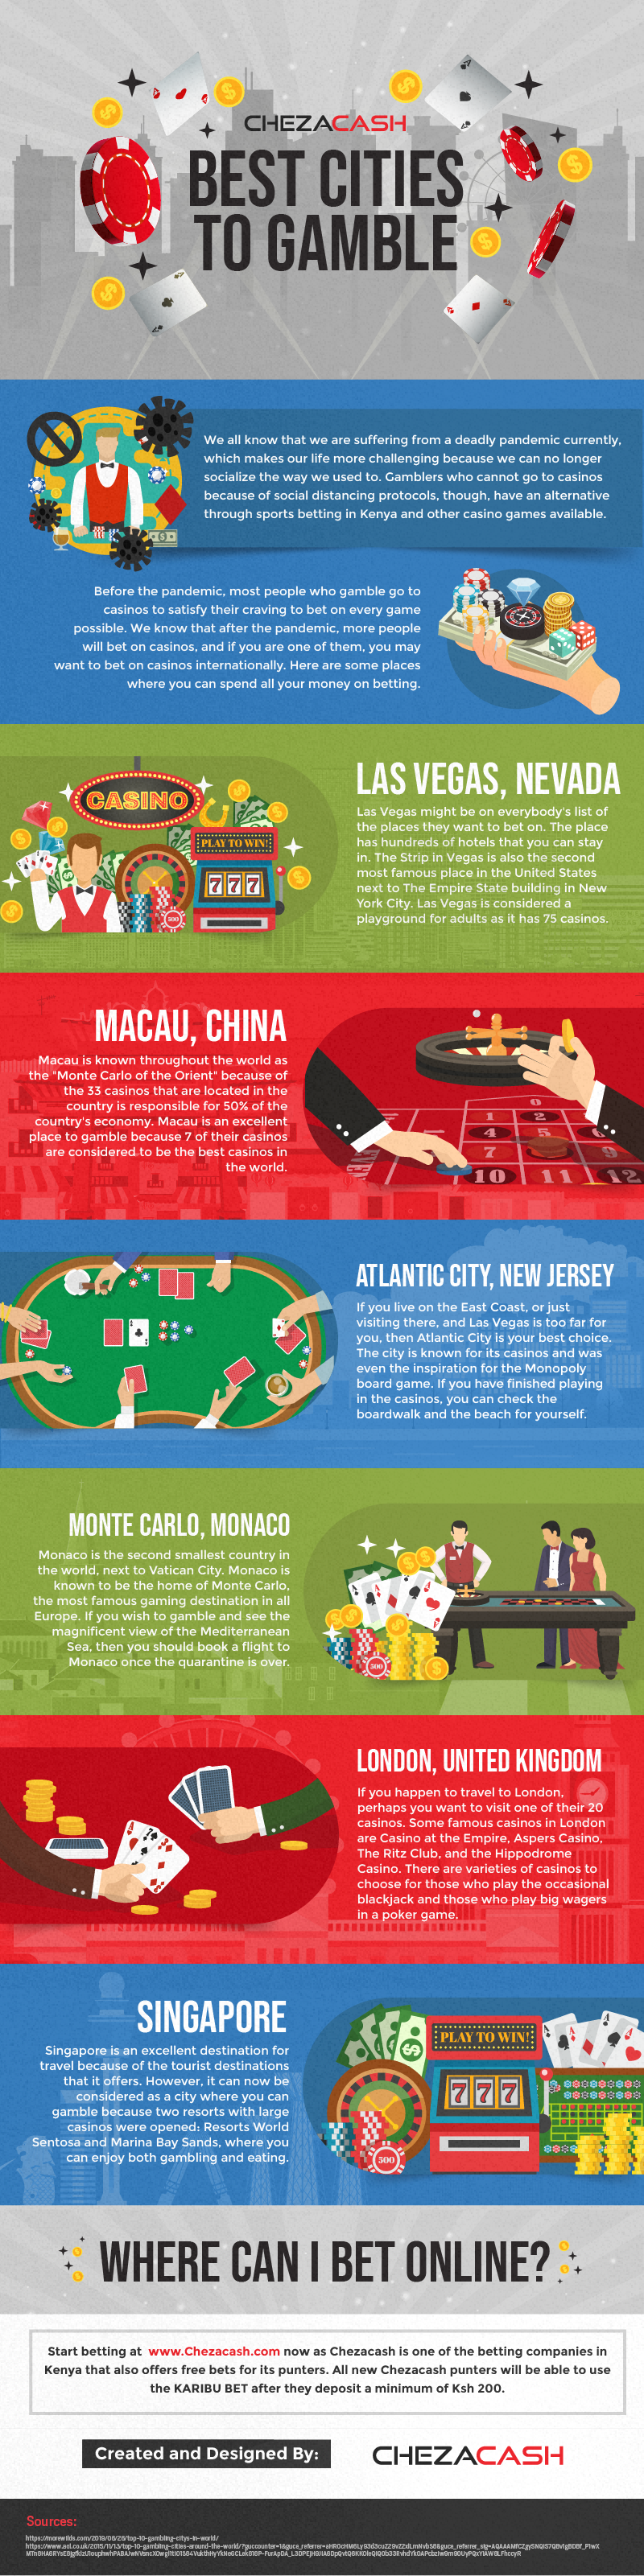 Best Cities to Gamble